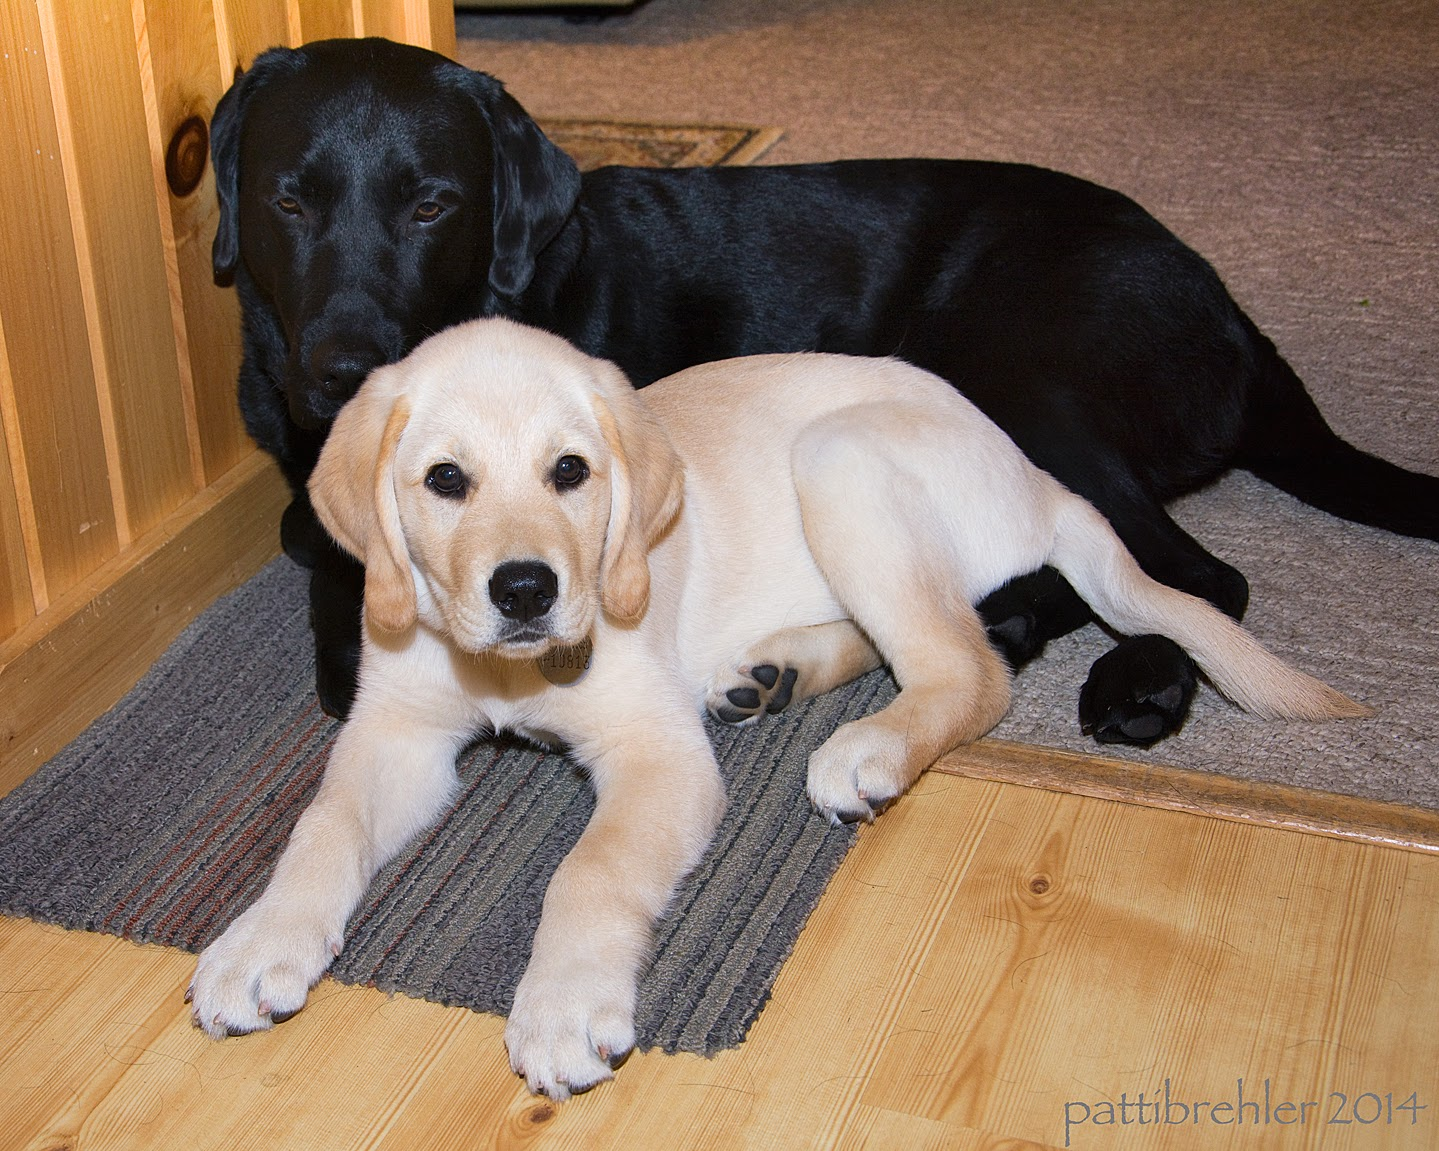 A large black lab is lying half on a carpeted floor and half on a carpet mat, facing the camera. Lying in front of the lab is a small yellow lab/golden retriever mix puppy, also facing the camera. The yellow puppy is snuggled up against the larger dog.